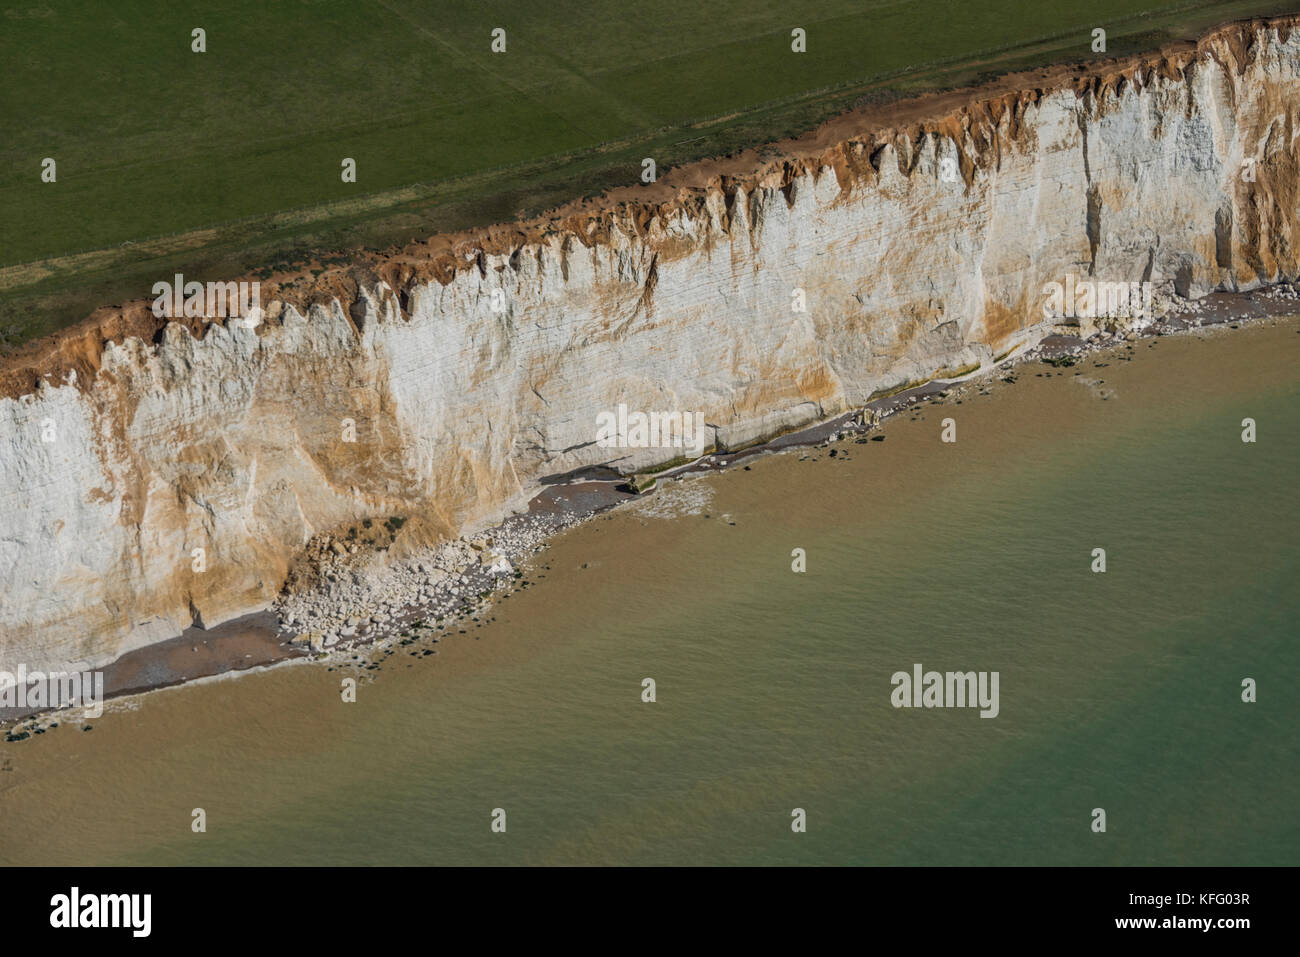 A n aerial view of the white cliffs of Beachy Head in East Sussex, United Kingdom. - Stock Image